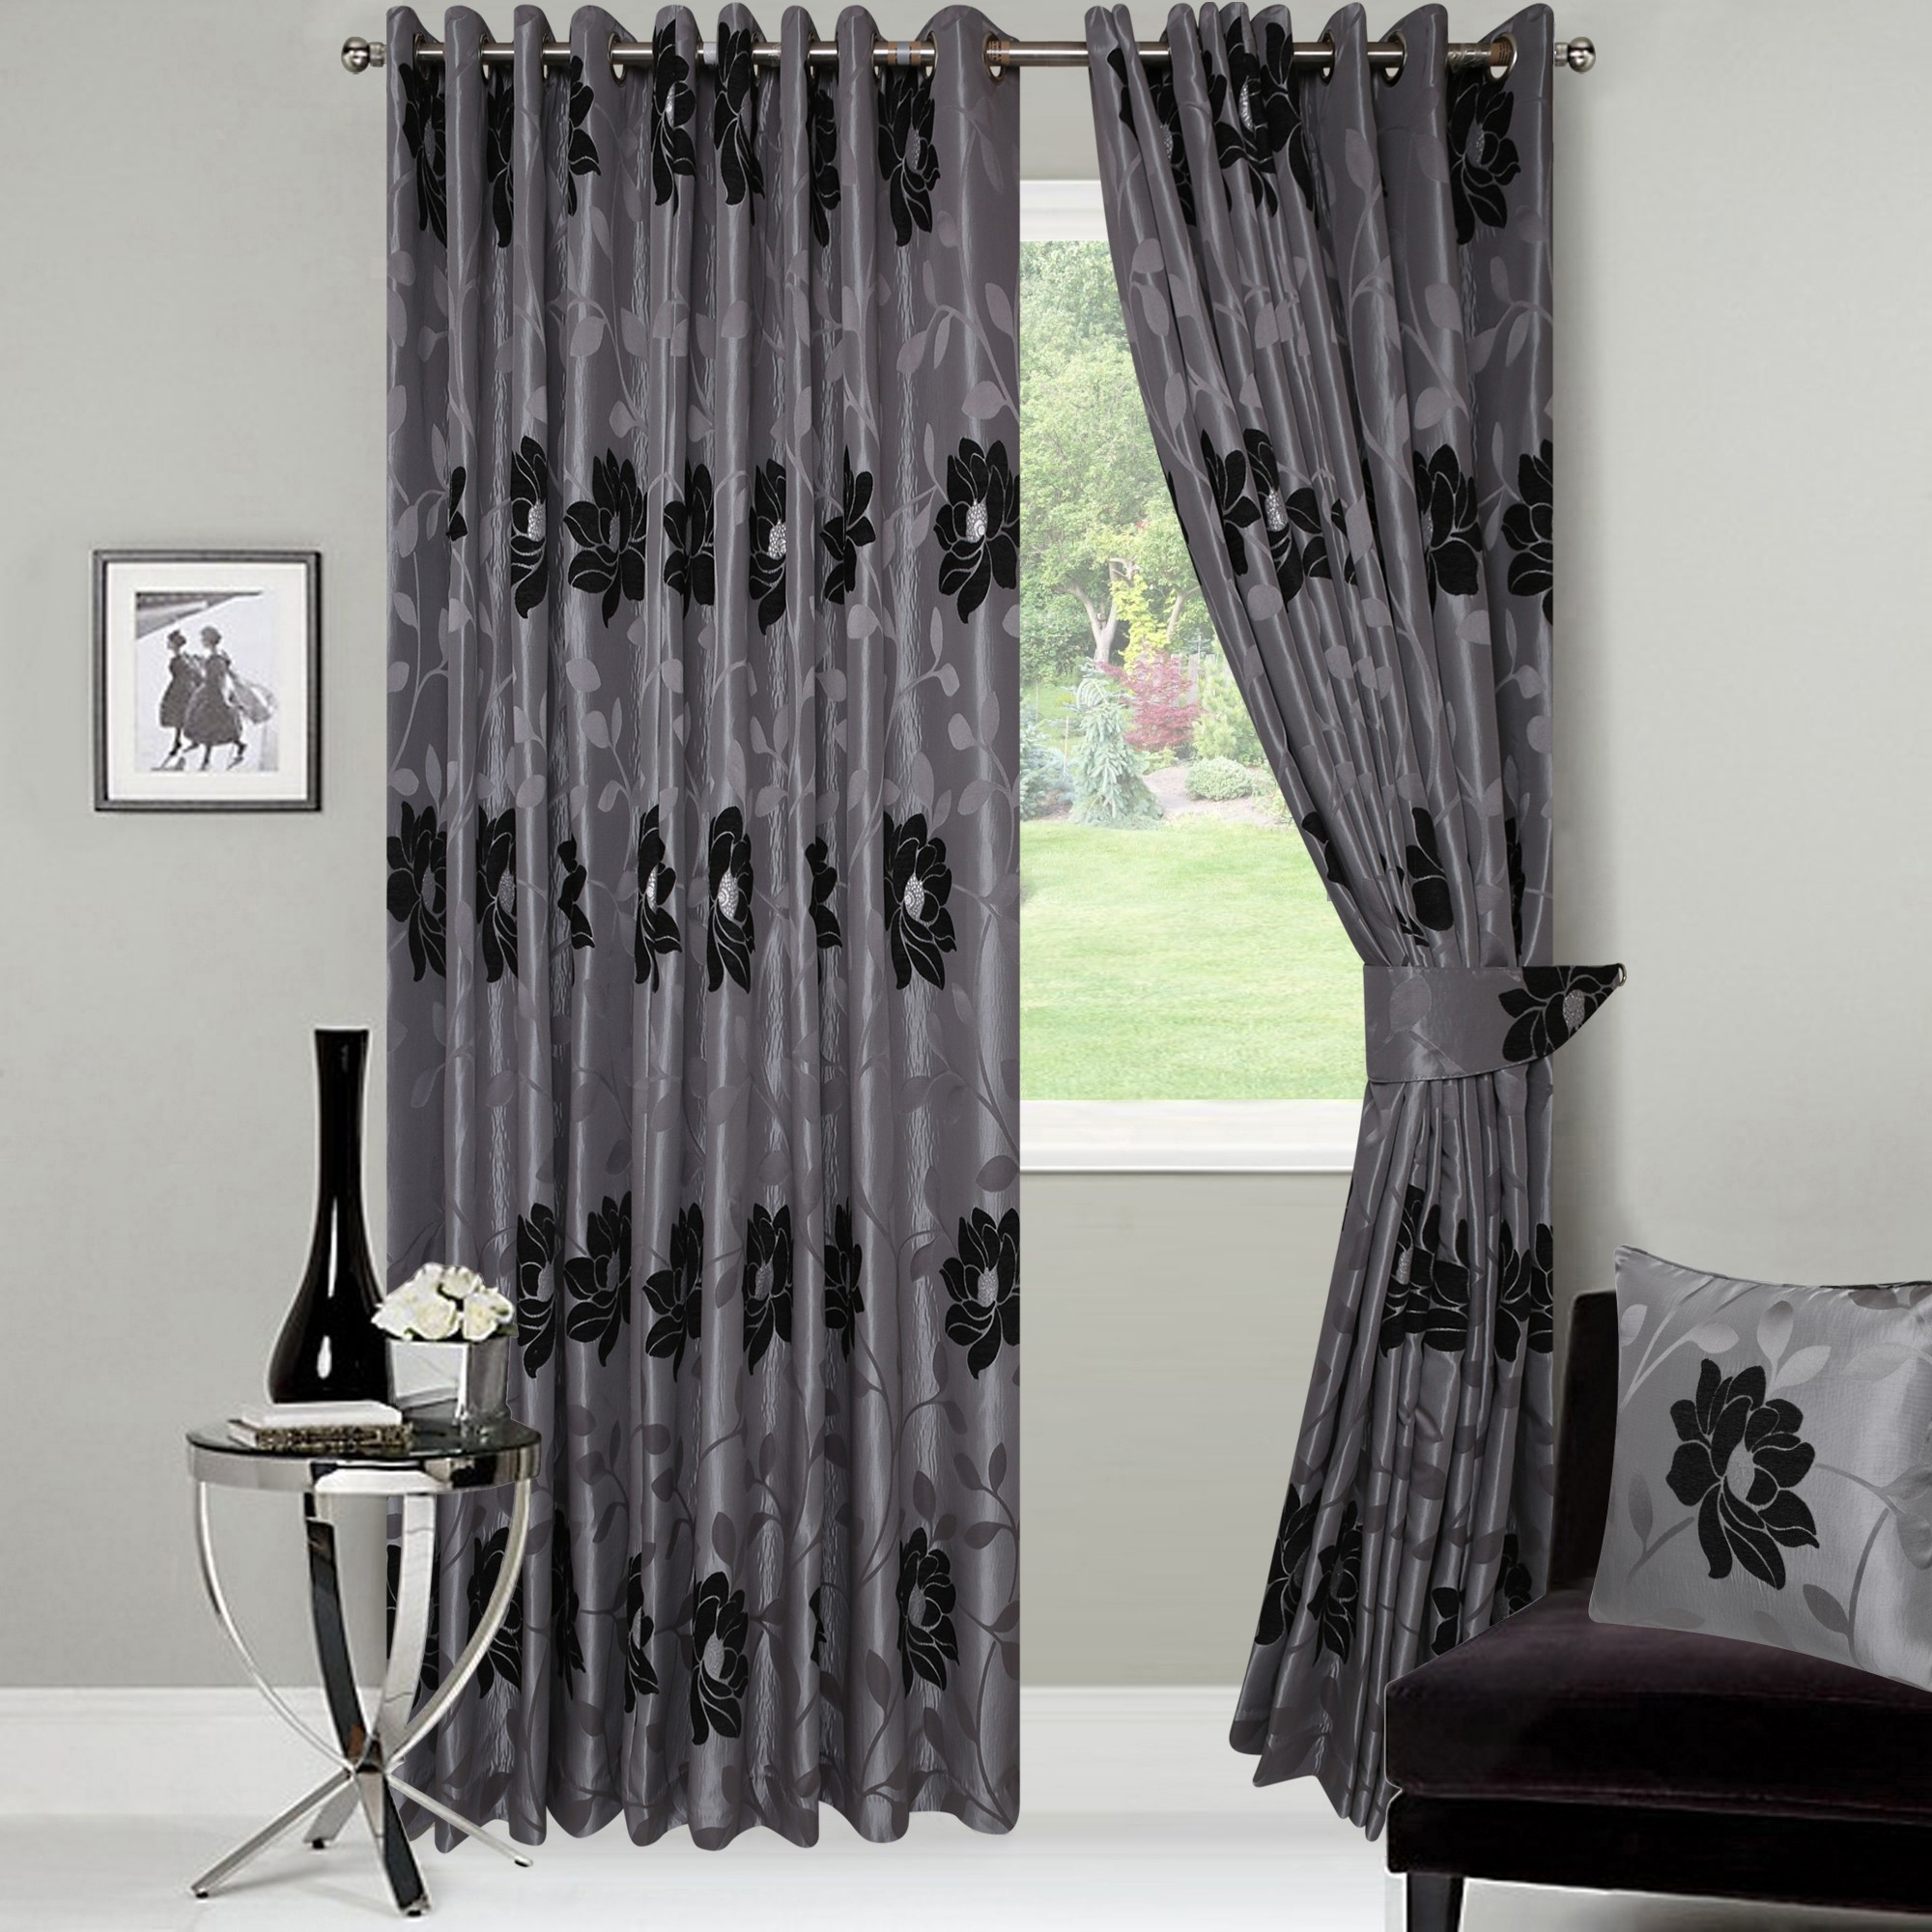 Madrid Ready Made Jacquard curtains